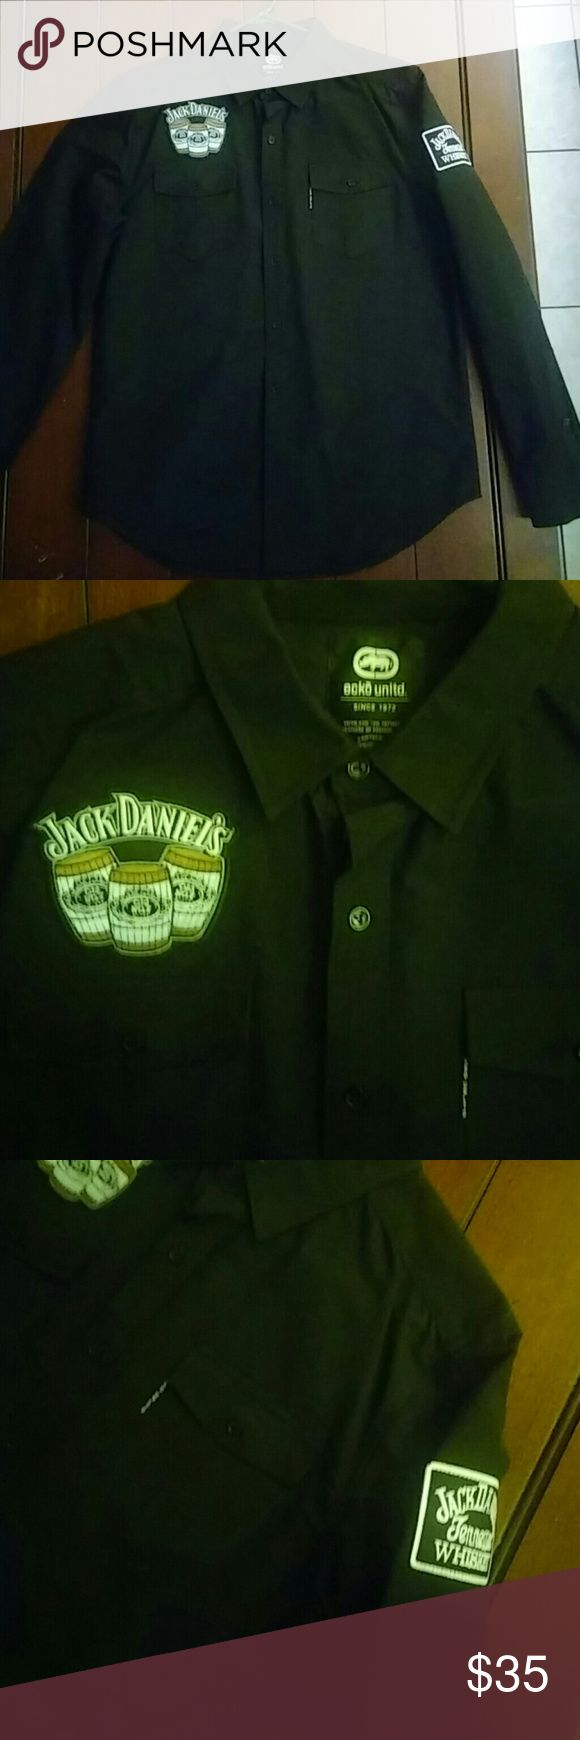 Ecko unlimited Jack Daniels Shirt Black Ecko long sleeve Jack Daniels Shirt. New never worn. Ecko Unlimited Shirts Casual Button Down Shirts